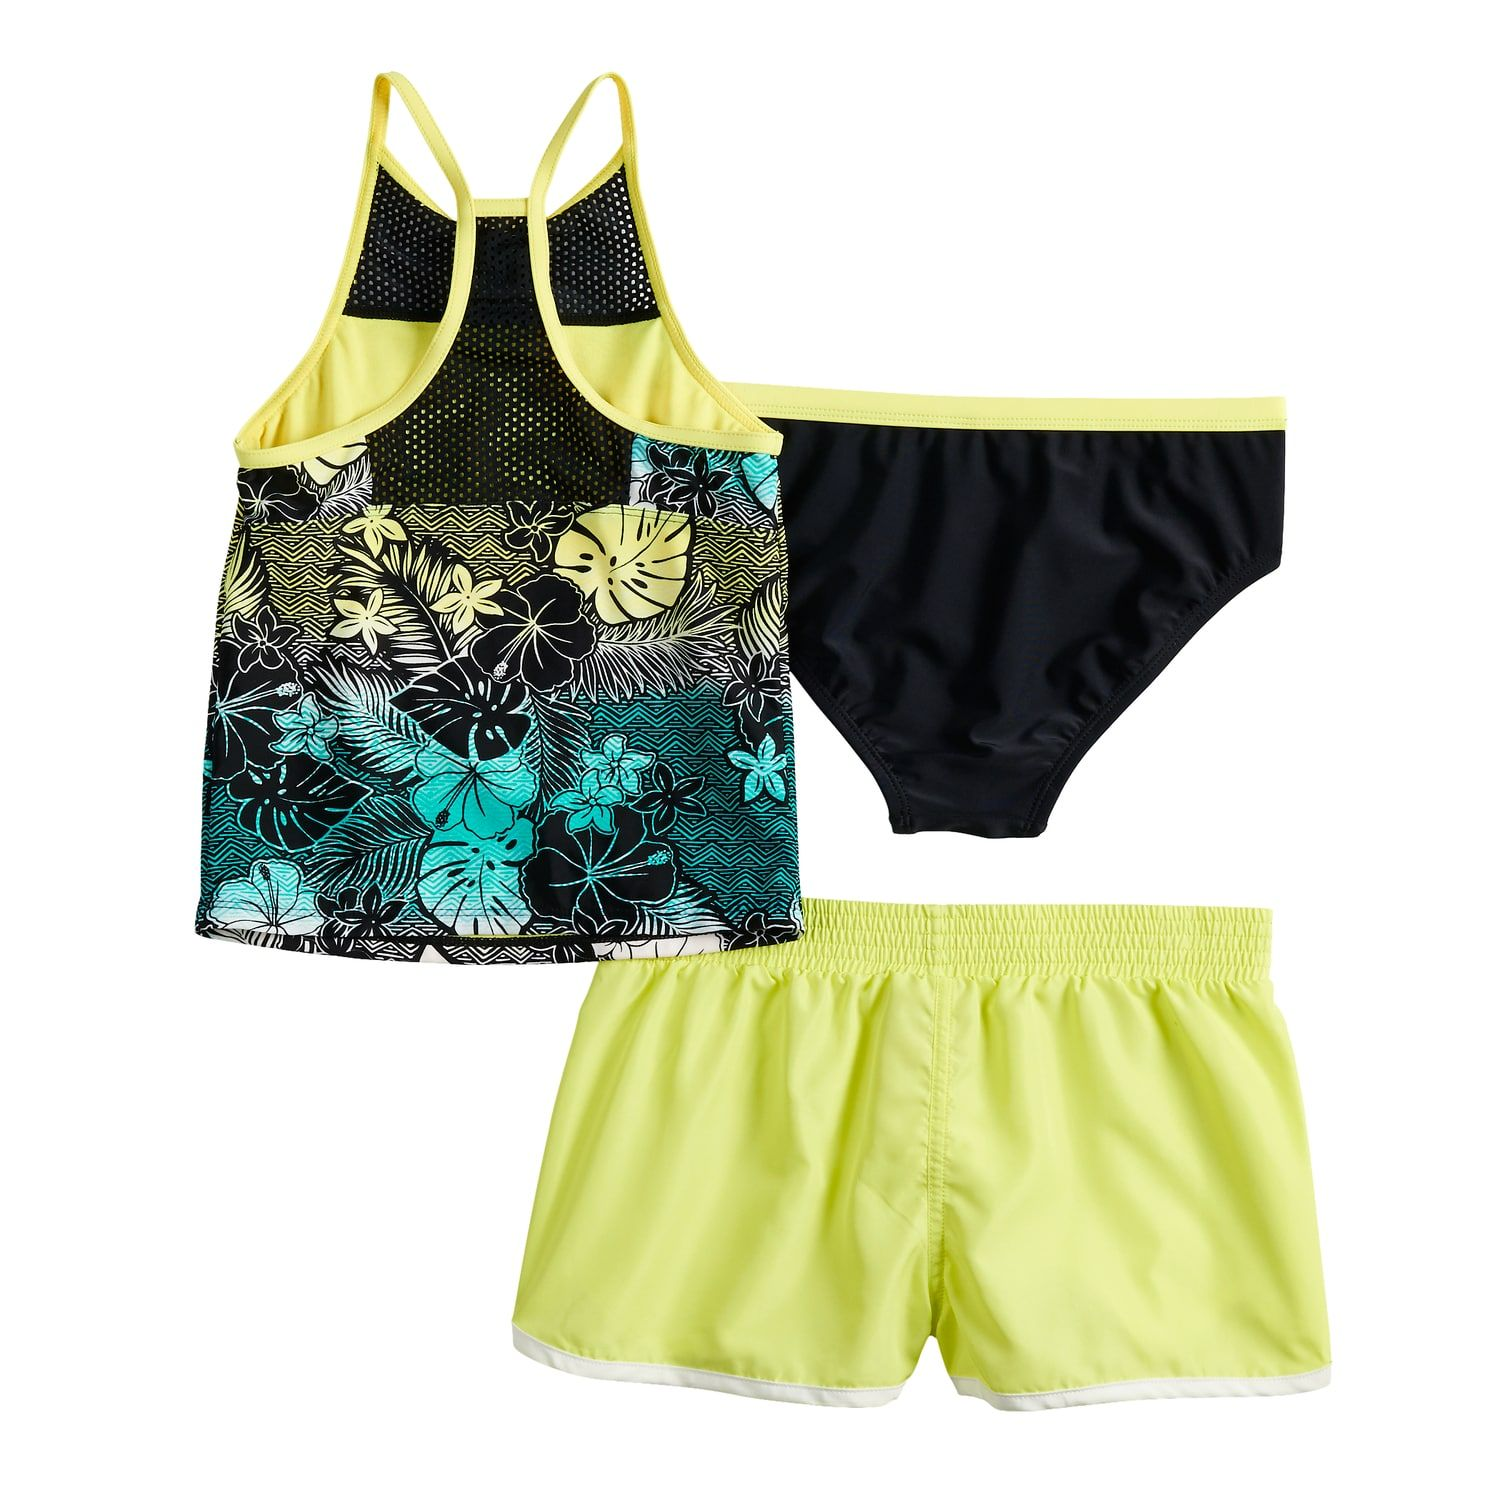 d254b0bad8 Girls 7-16 ZeroXposur Tropical Wave Tankini Top, Bottoms & Shorts Swimsuit  Set #